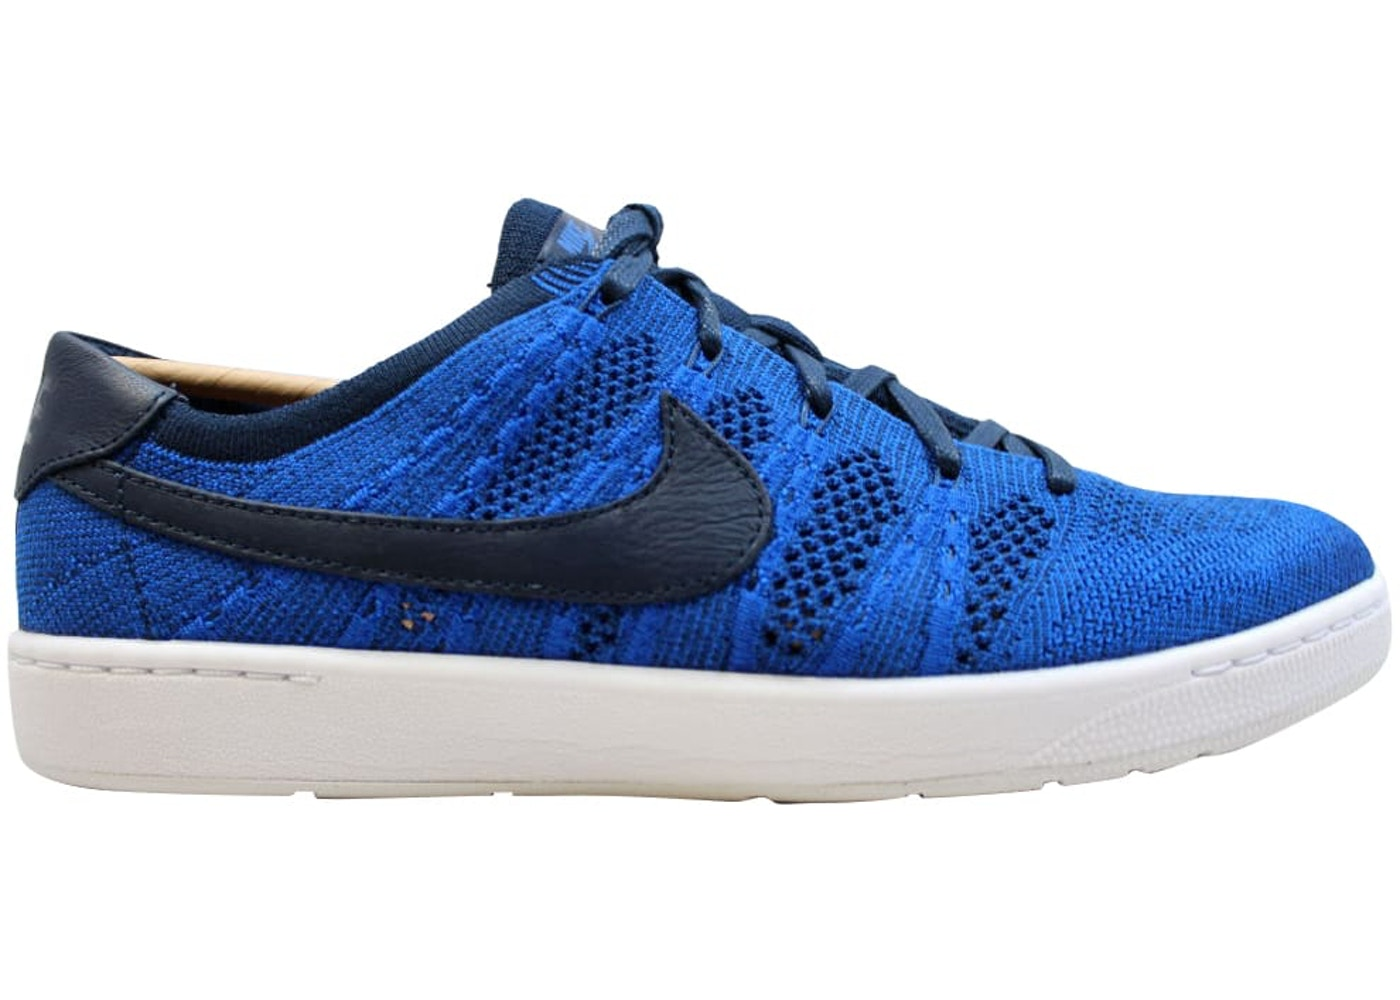 701abede0b481 Sell. or Ask. Size --. View All Bids. Nike Tennis Classic Ultra Flyknit  College Navy College Navy-Racer Blue-White